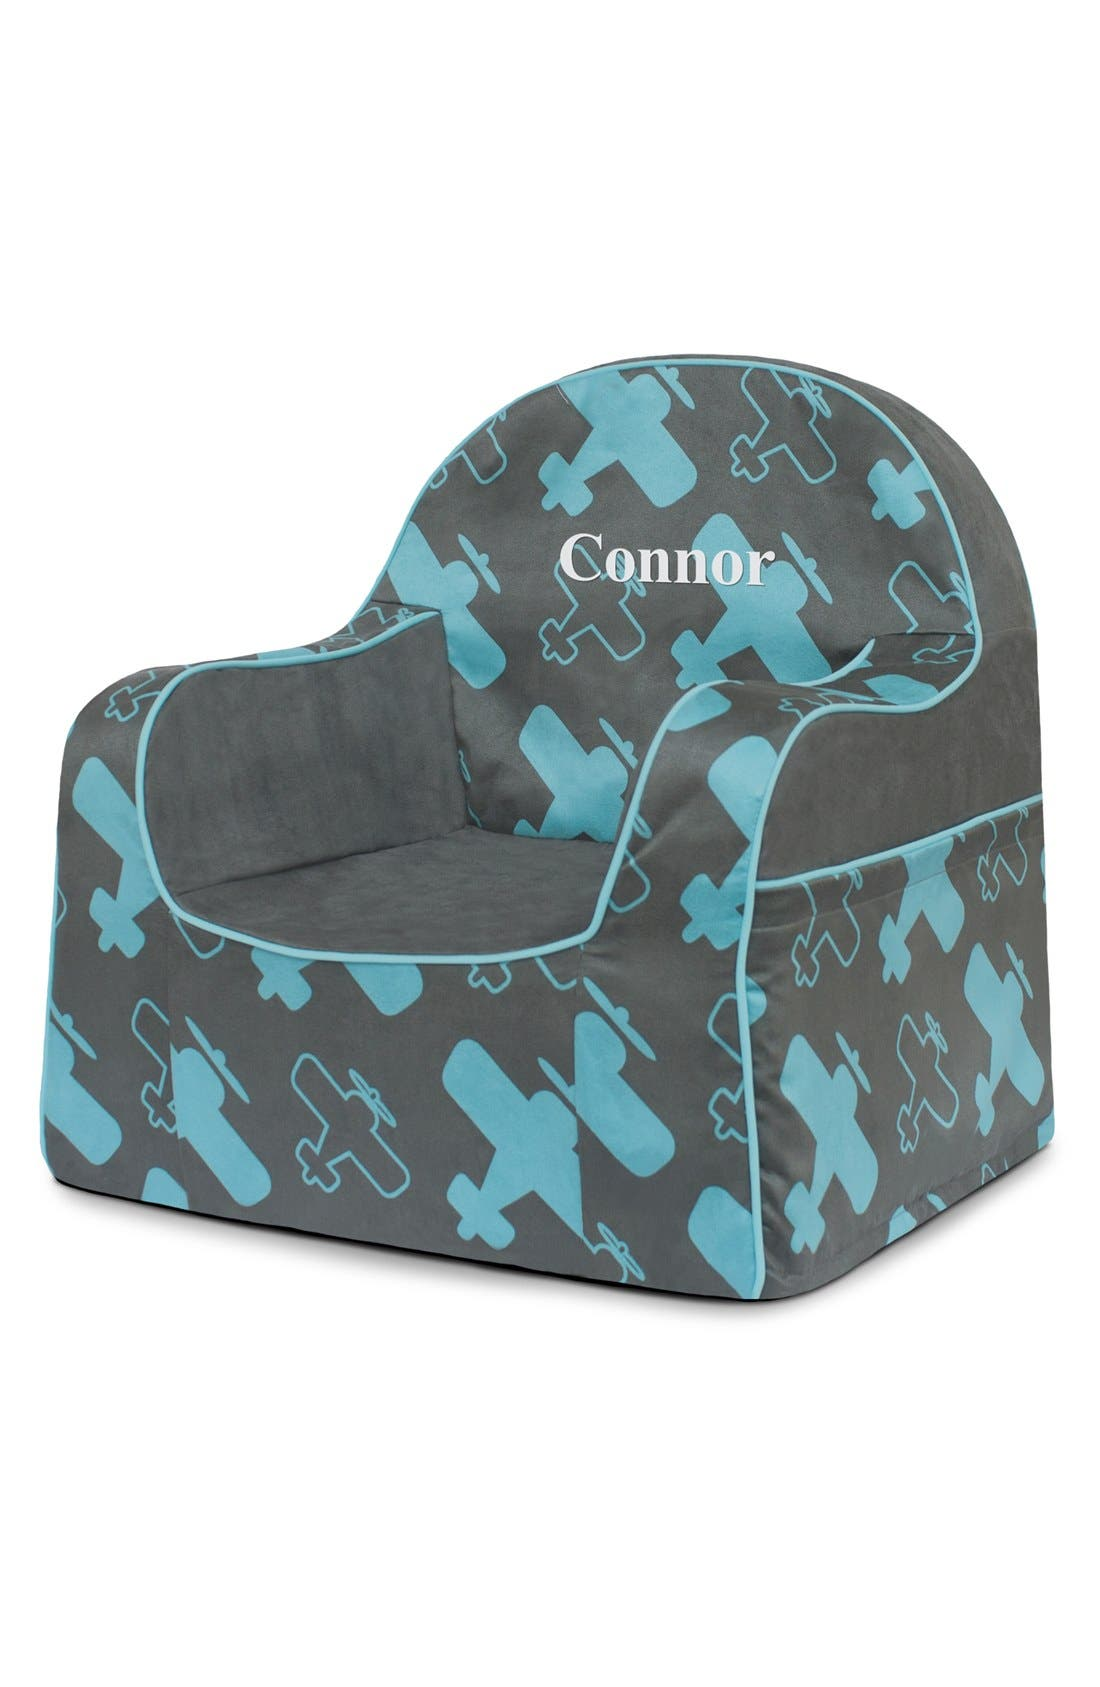 'Personalized Little Reader' Chair,                         Main,                         color, Planes